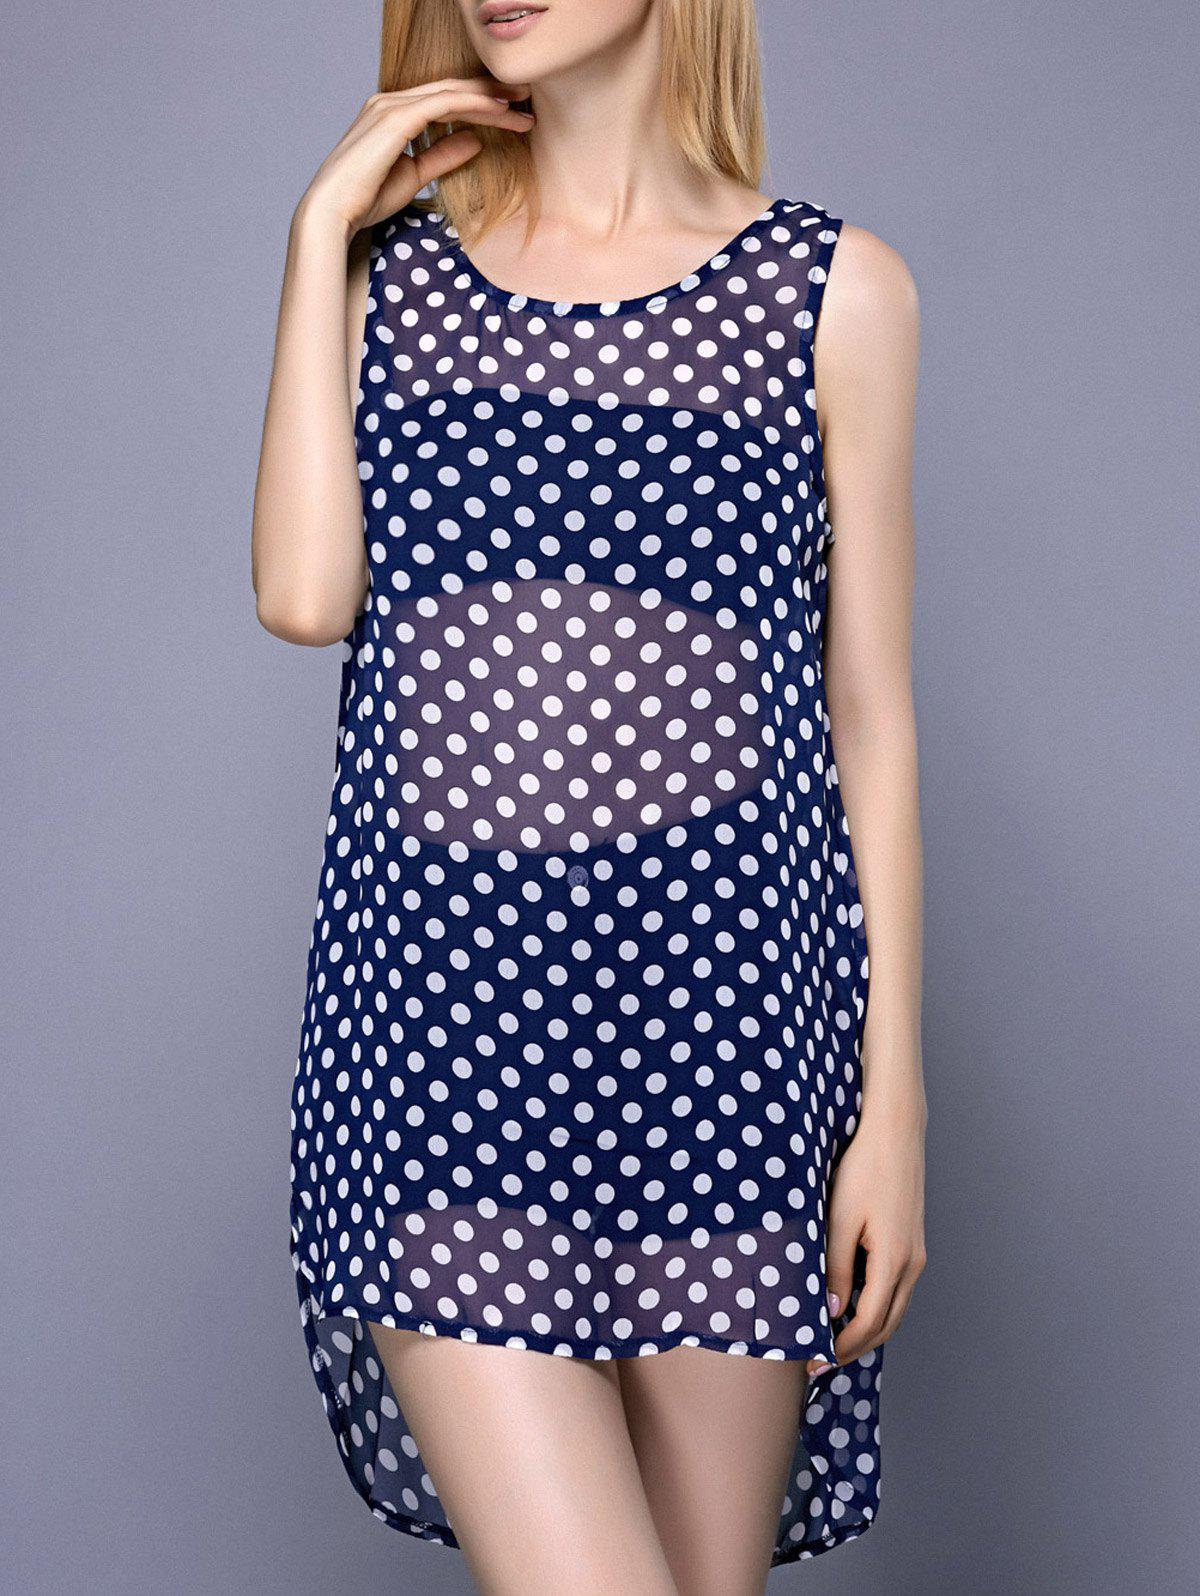 Fashionable Women's Scoop Neck Polka Dot High Low Cover-Up